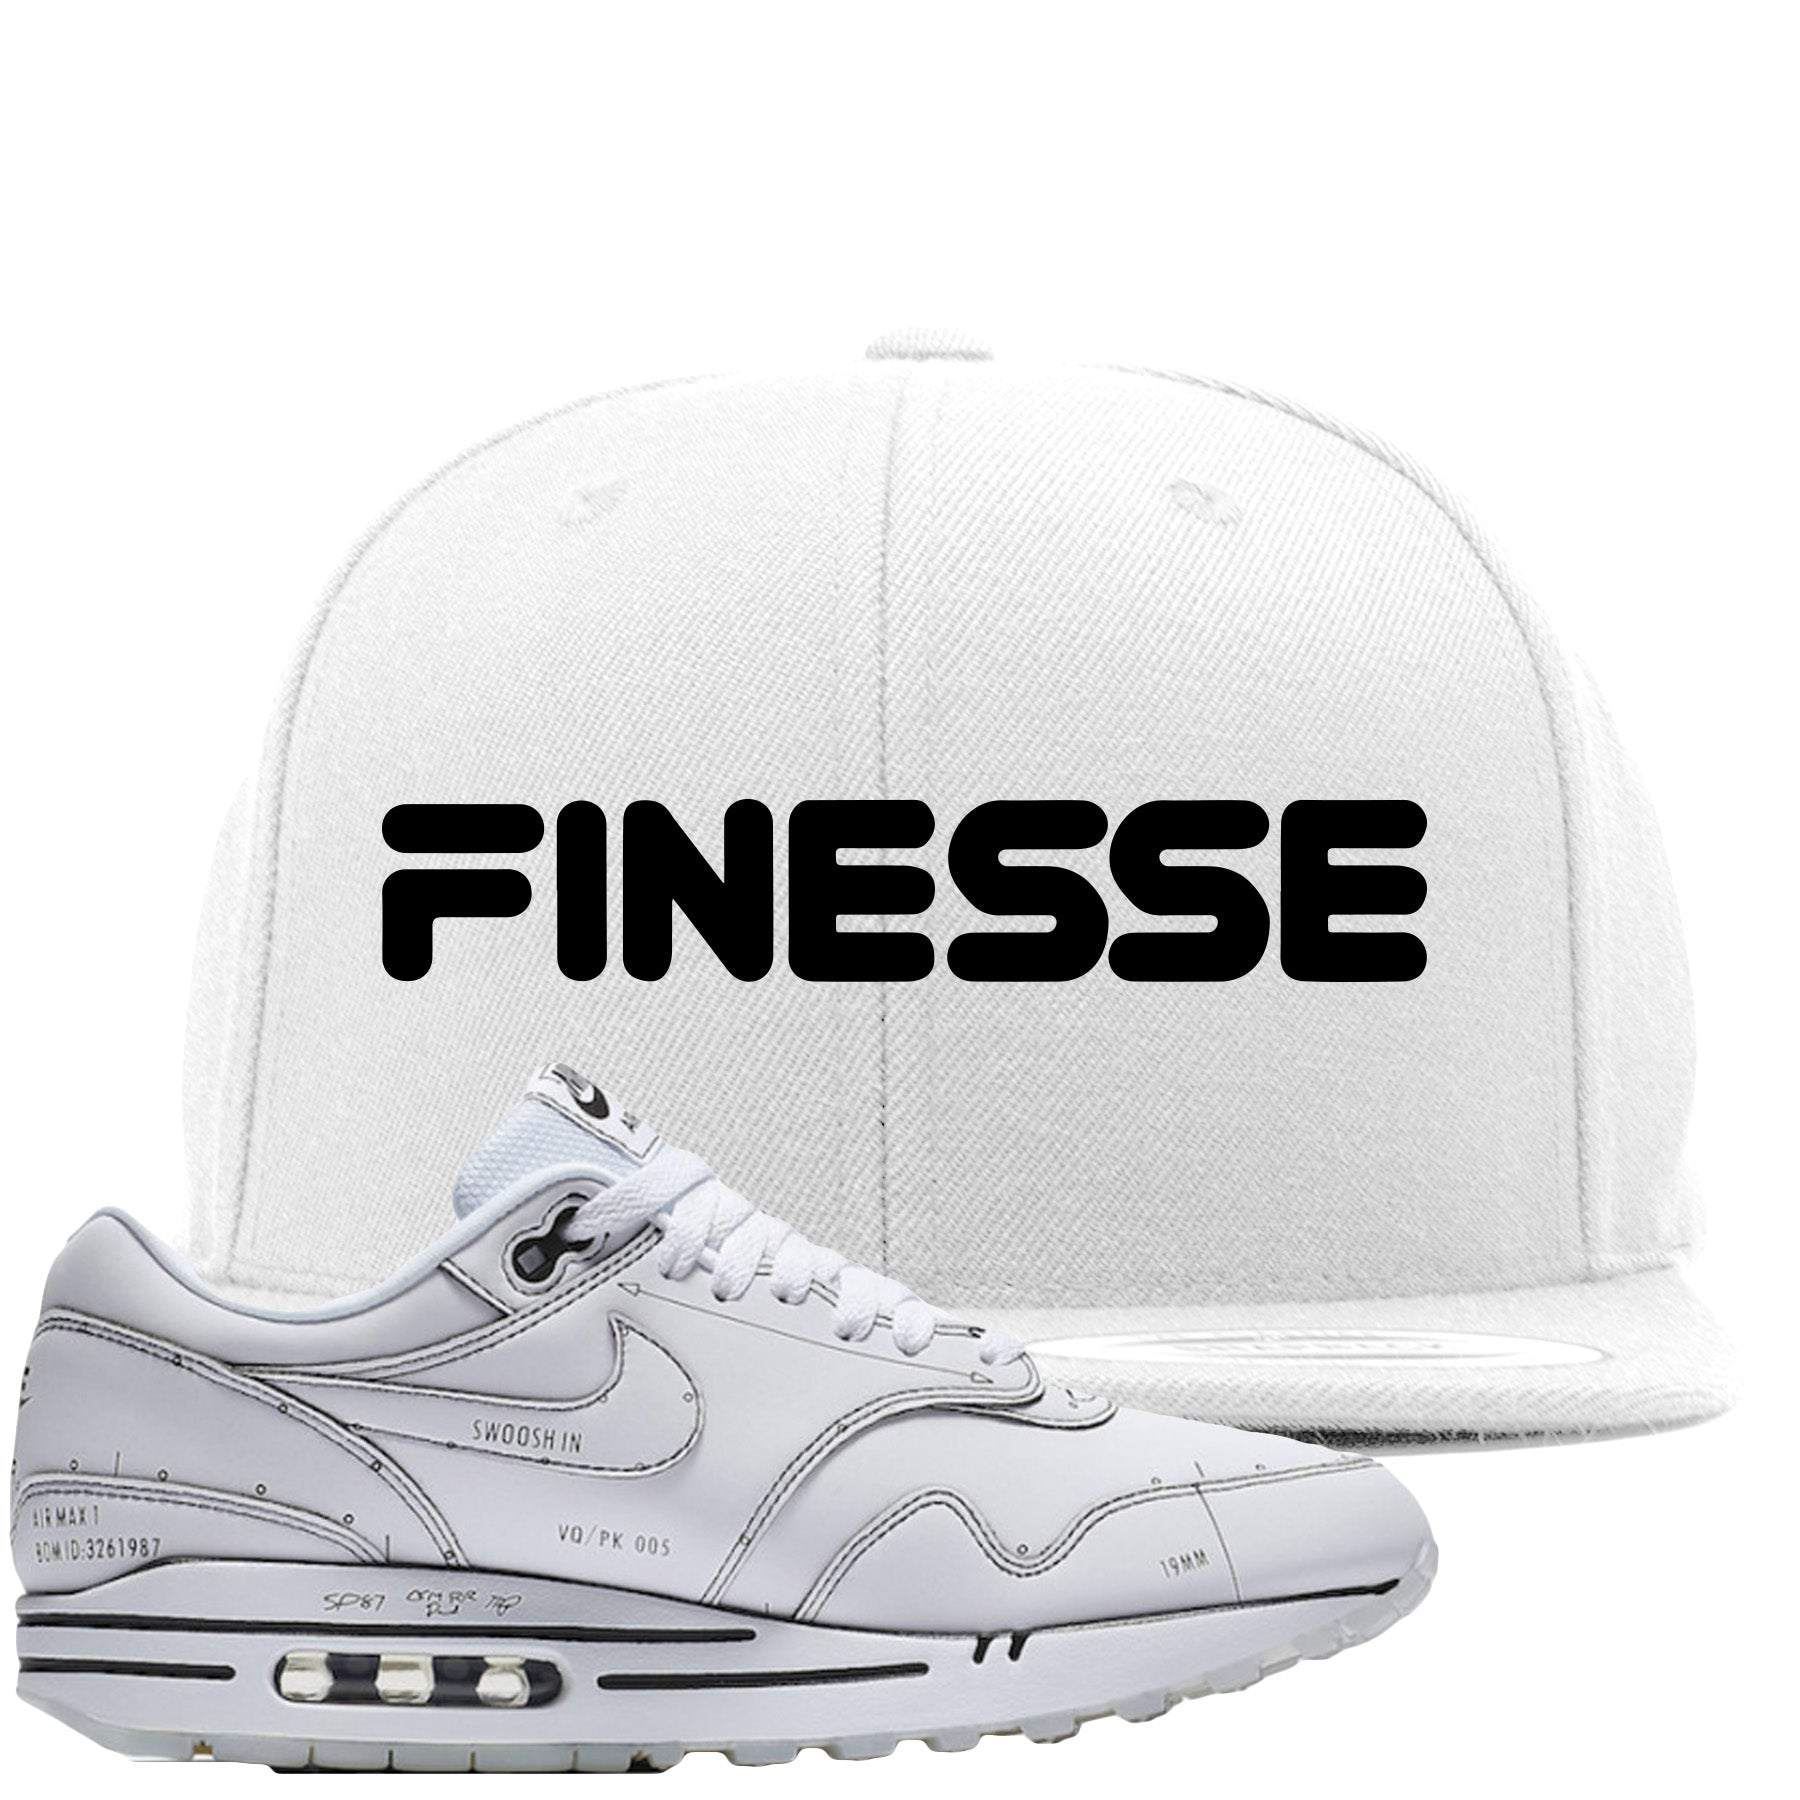 Nike Air Max 1 Sketch to Shelf White Sneaker Match Finesse White Snapback